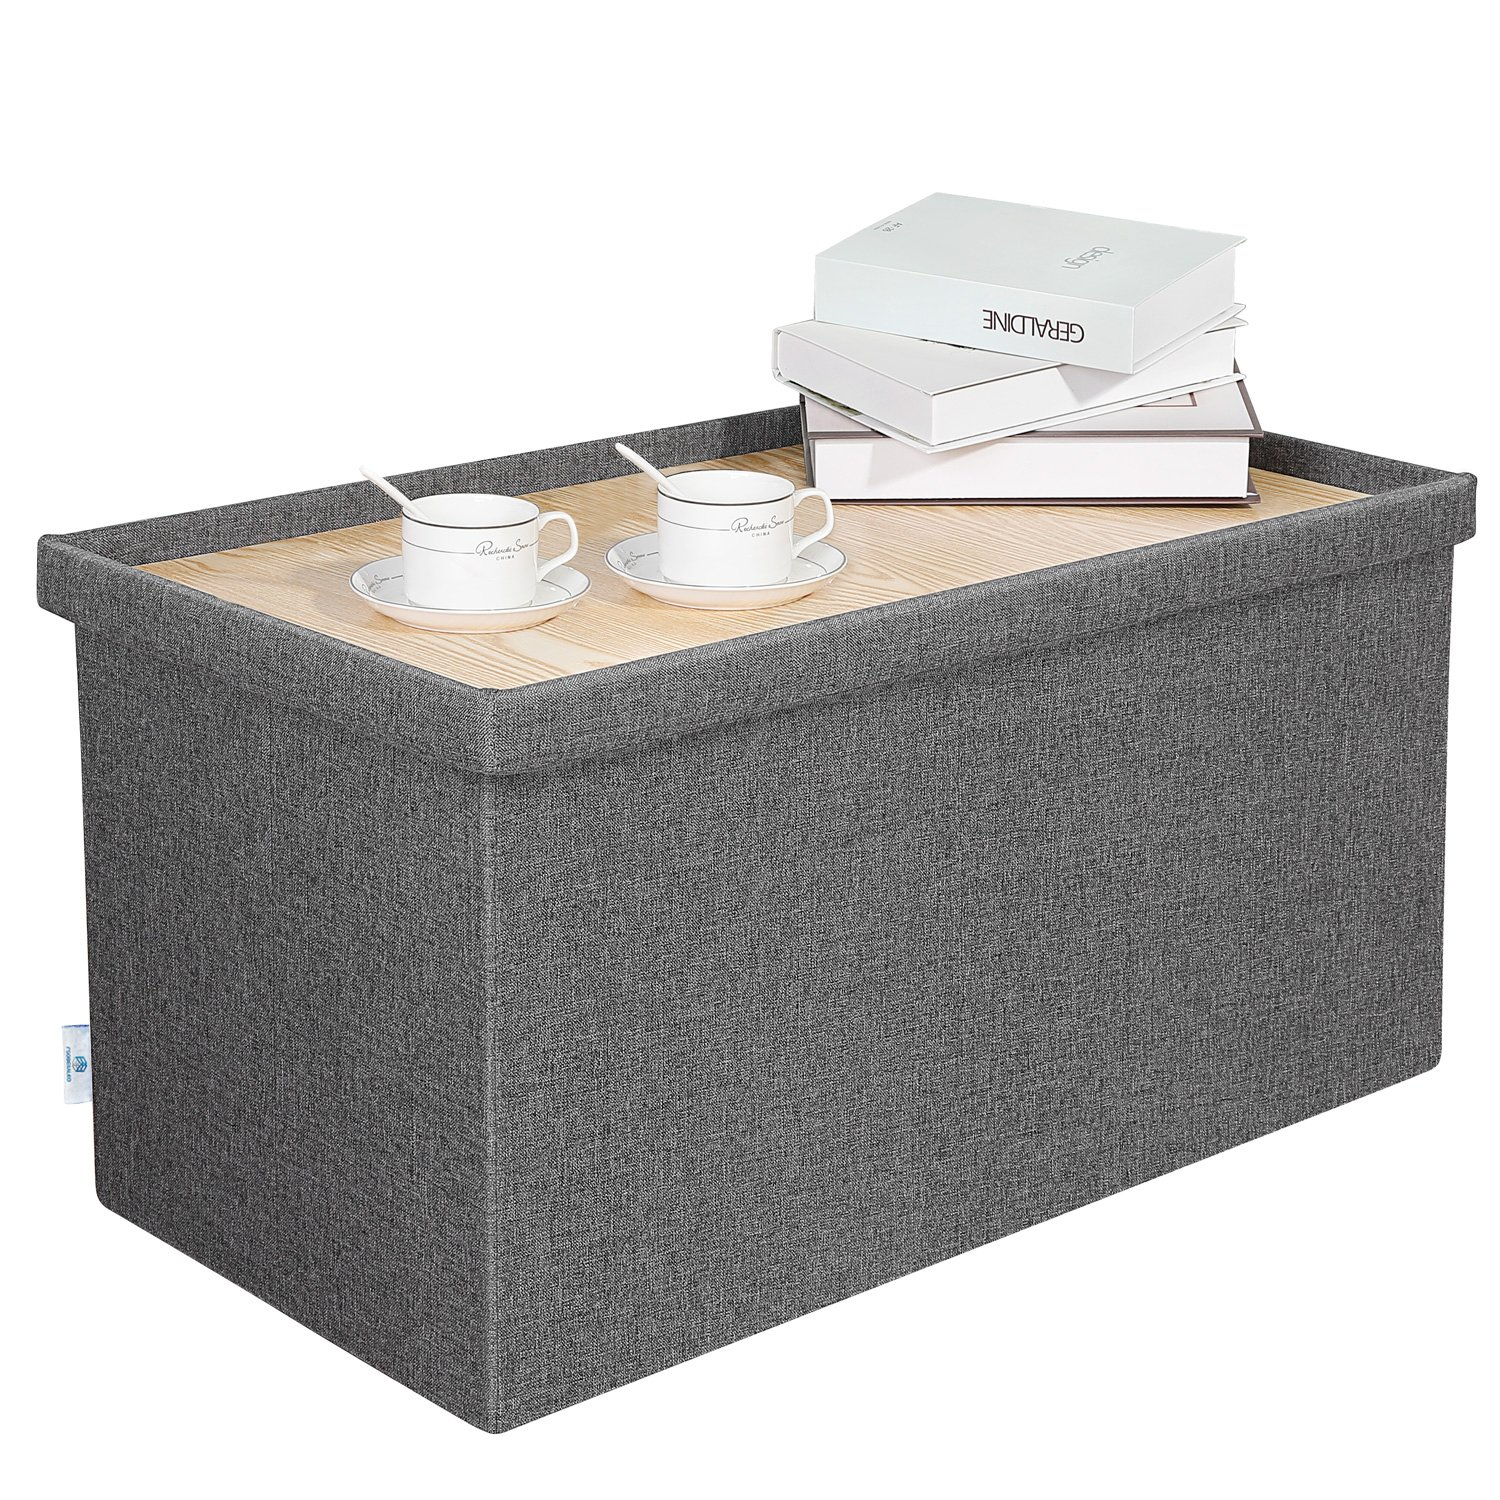 Large Ottoman Coffee Table Tray: B FSOBEIIALEO Storage Ottoman With Tray, Linen Coffee